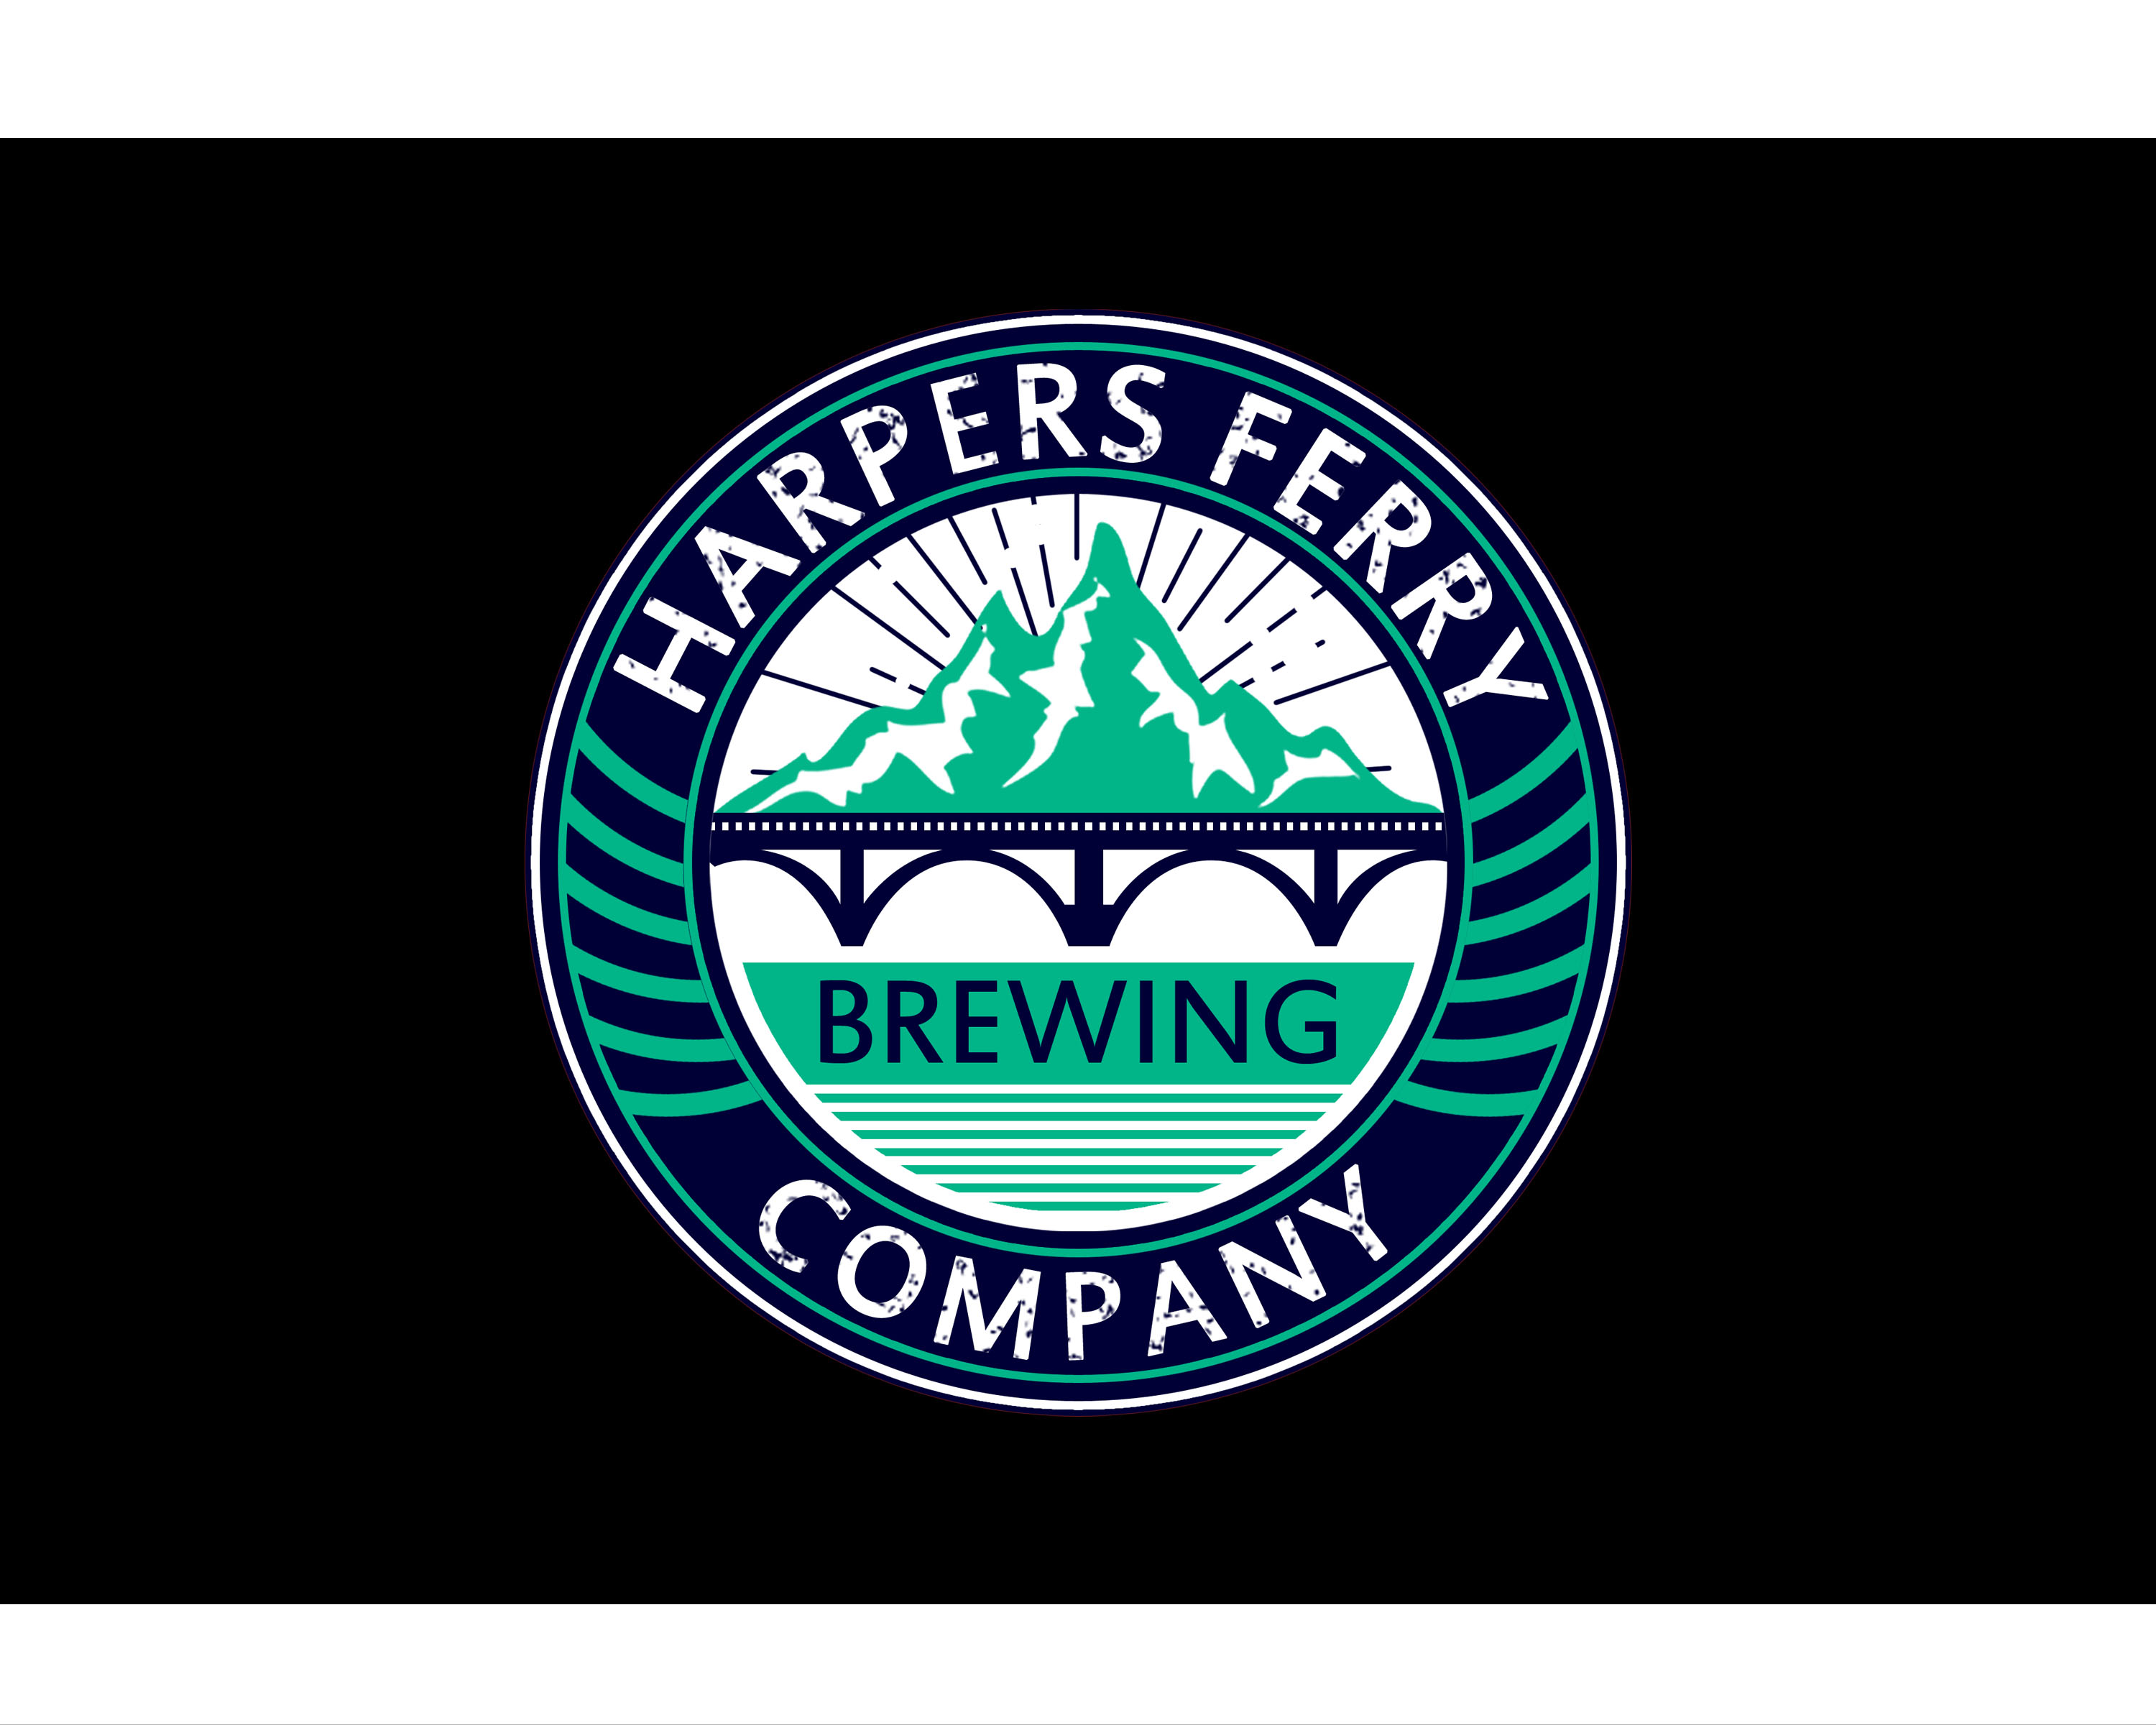 Logo Design by Ian jade Laman - Entry No. 119 in the Logo Design Contest Unique Logo Design Wanted for Harpers ferry brewing company.